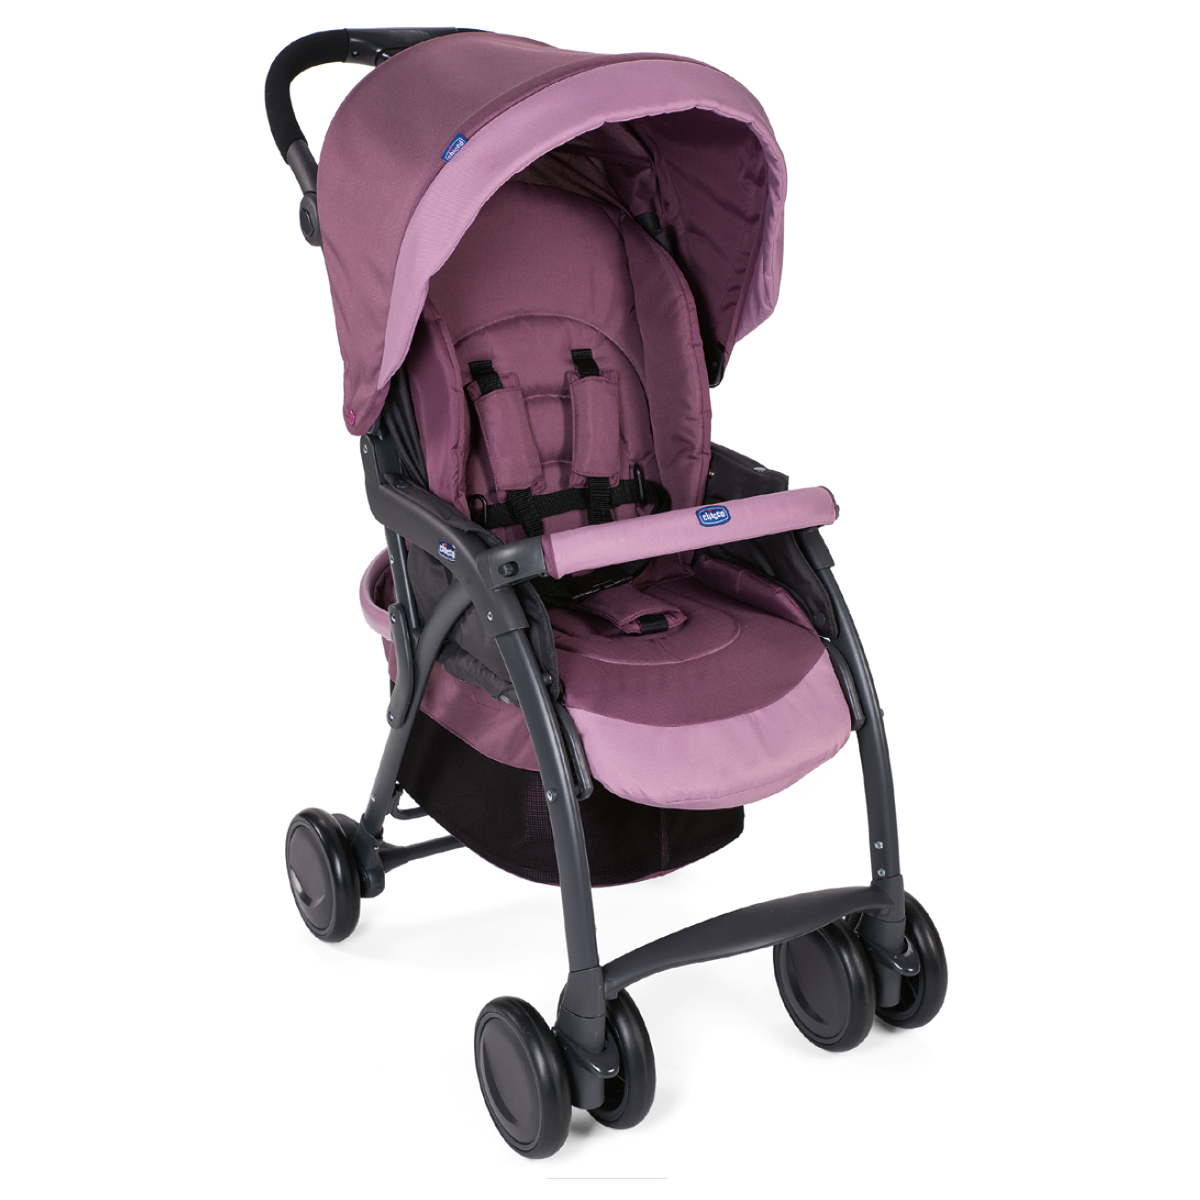 Carucior sport Chicco Simplicity Plus Top, 0 luni+, Mov imagine 2021